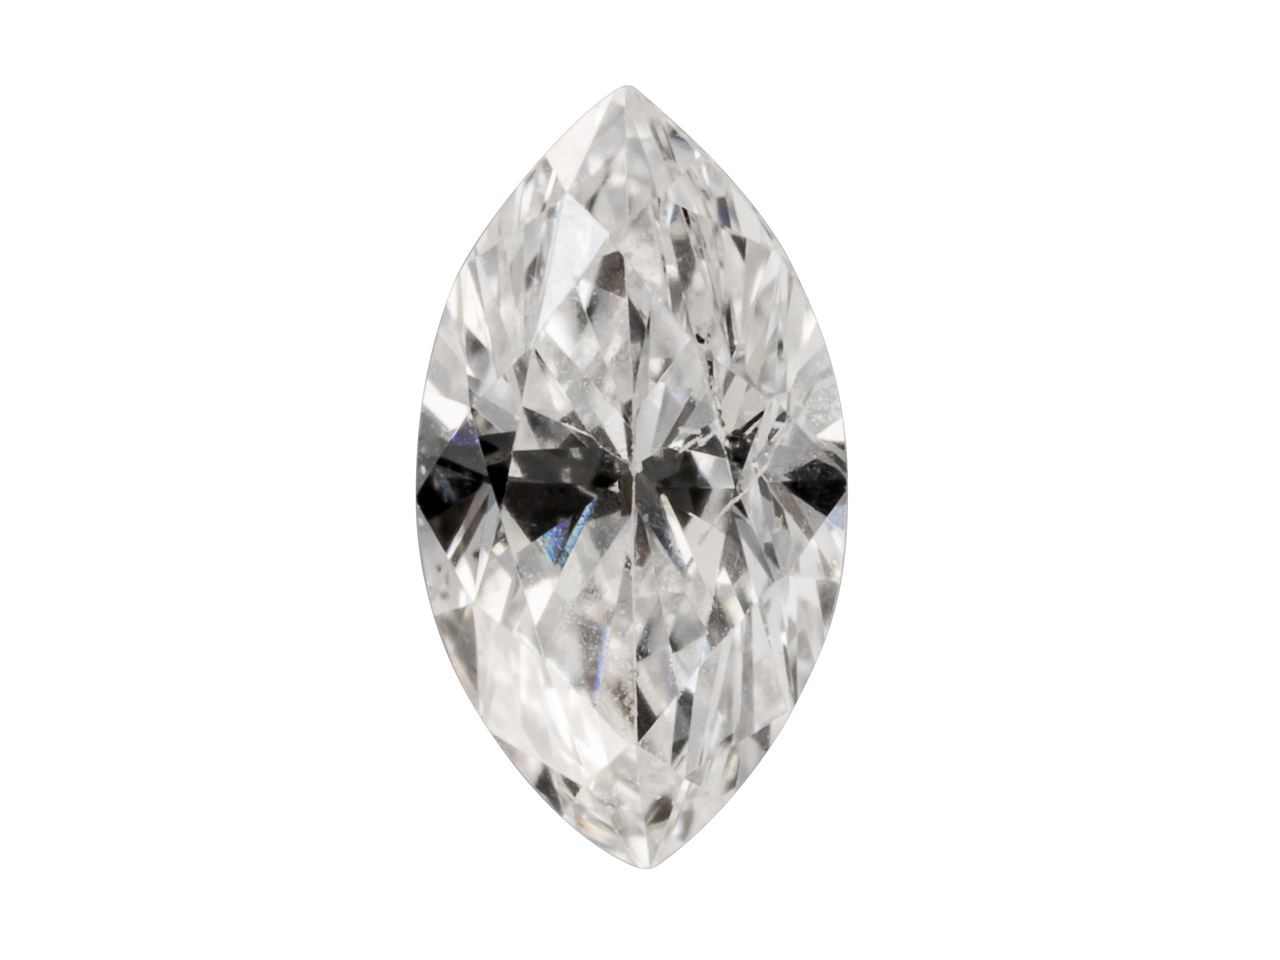 Diamond, Marquise, H/si,           8pt/3x1.5mm